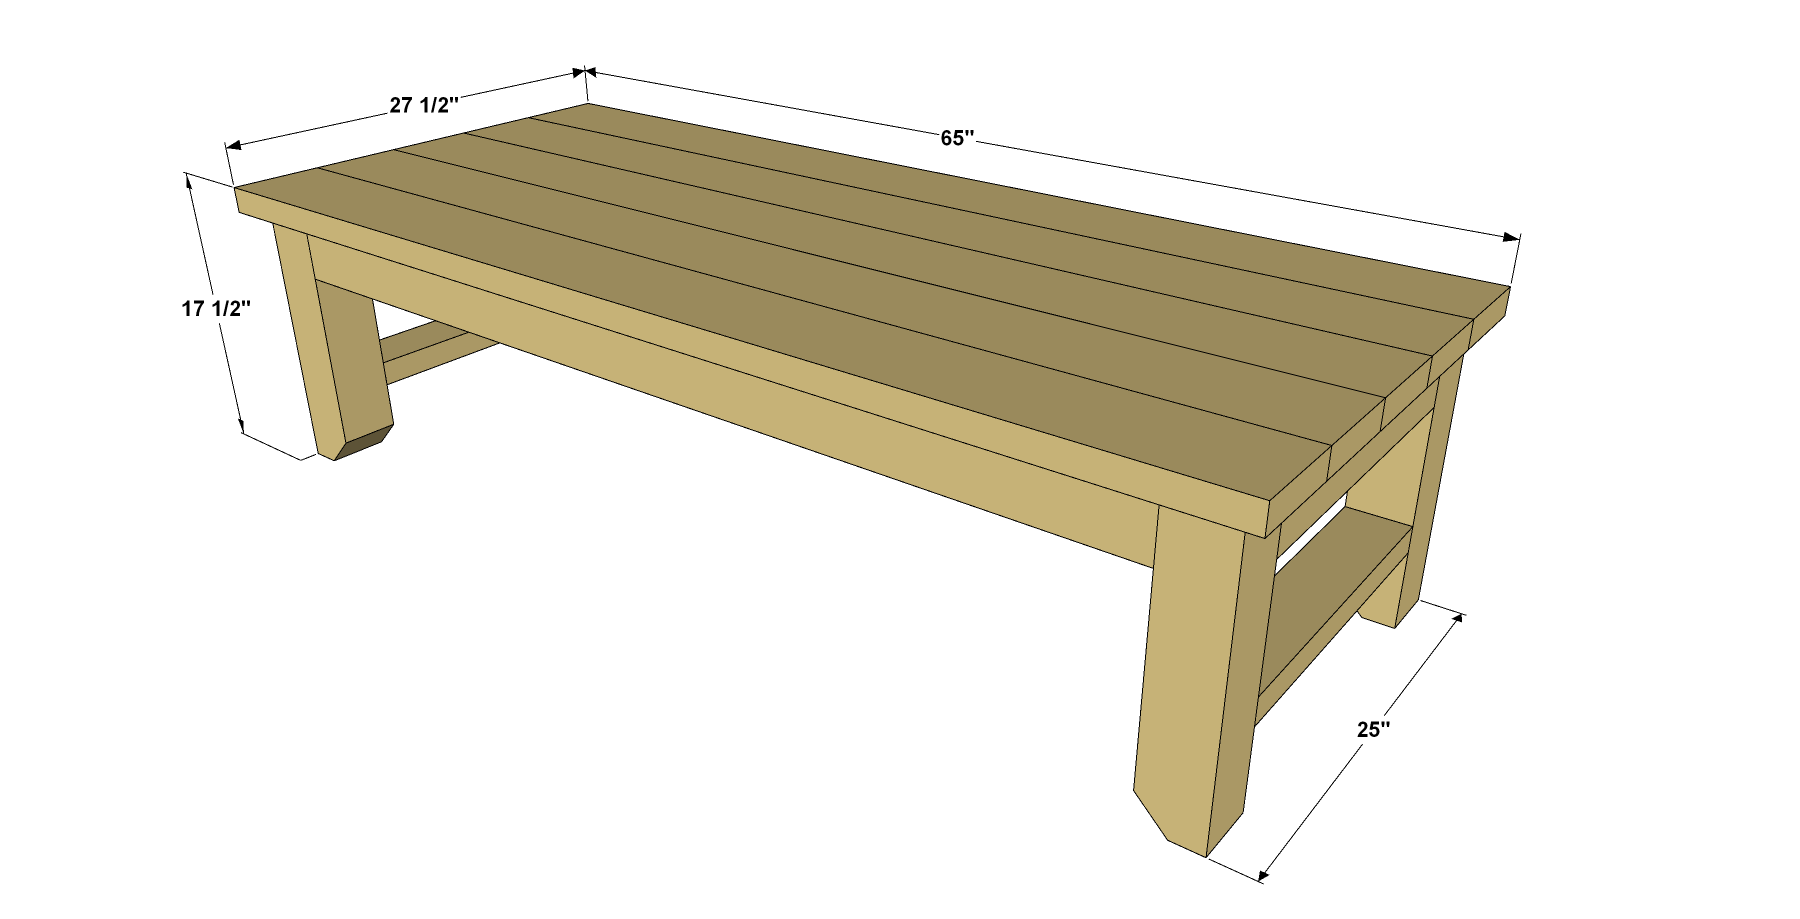 cedar-bench-overall-with-dimensions